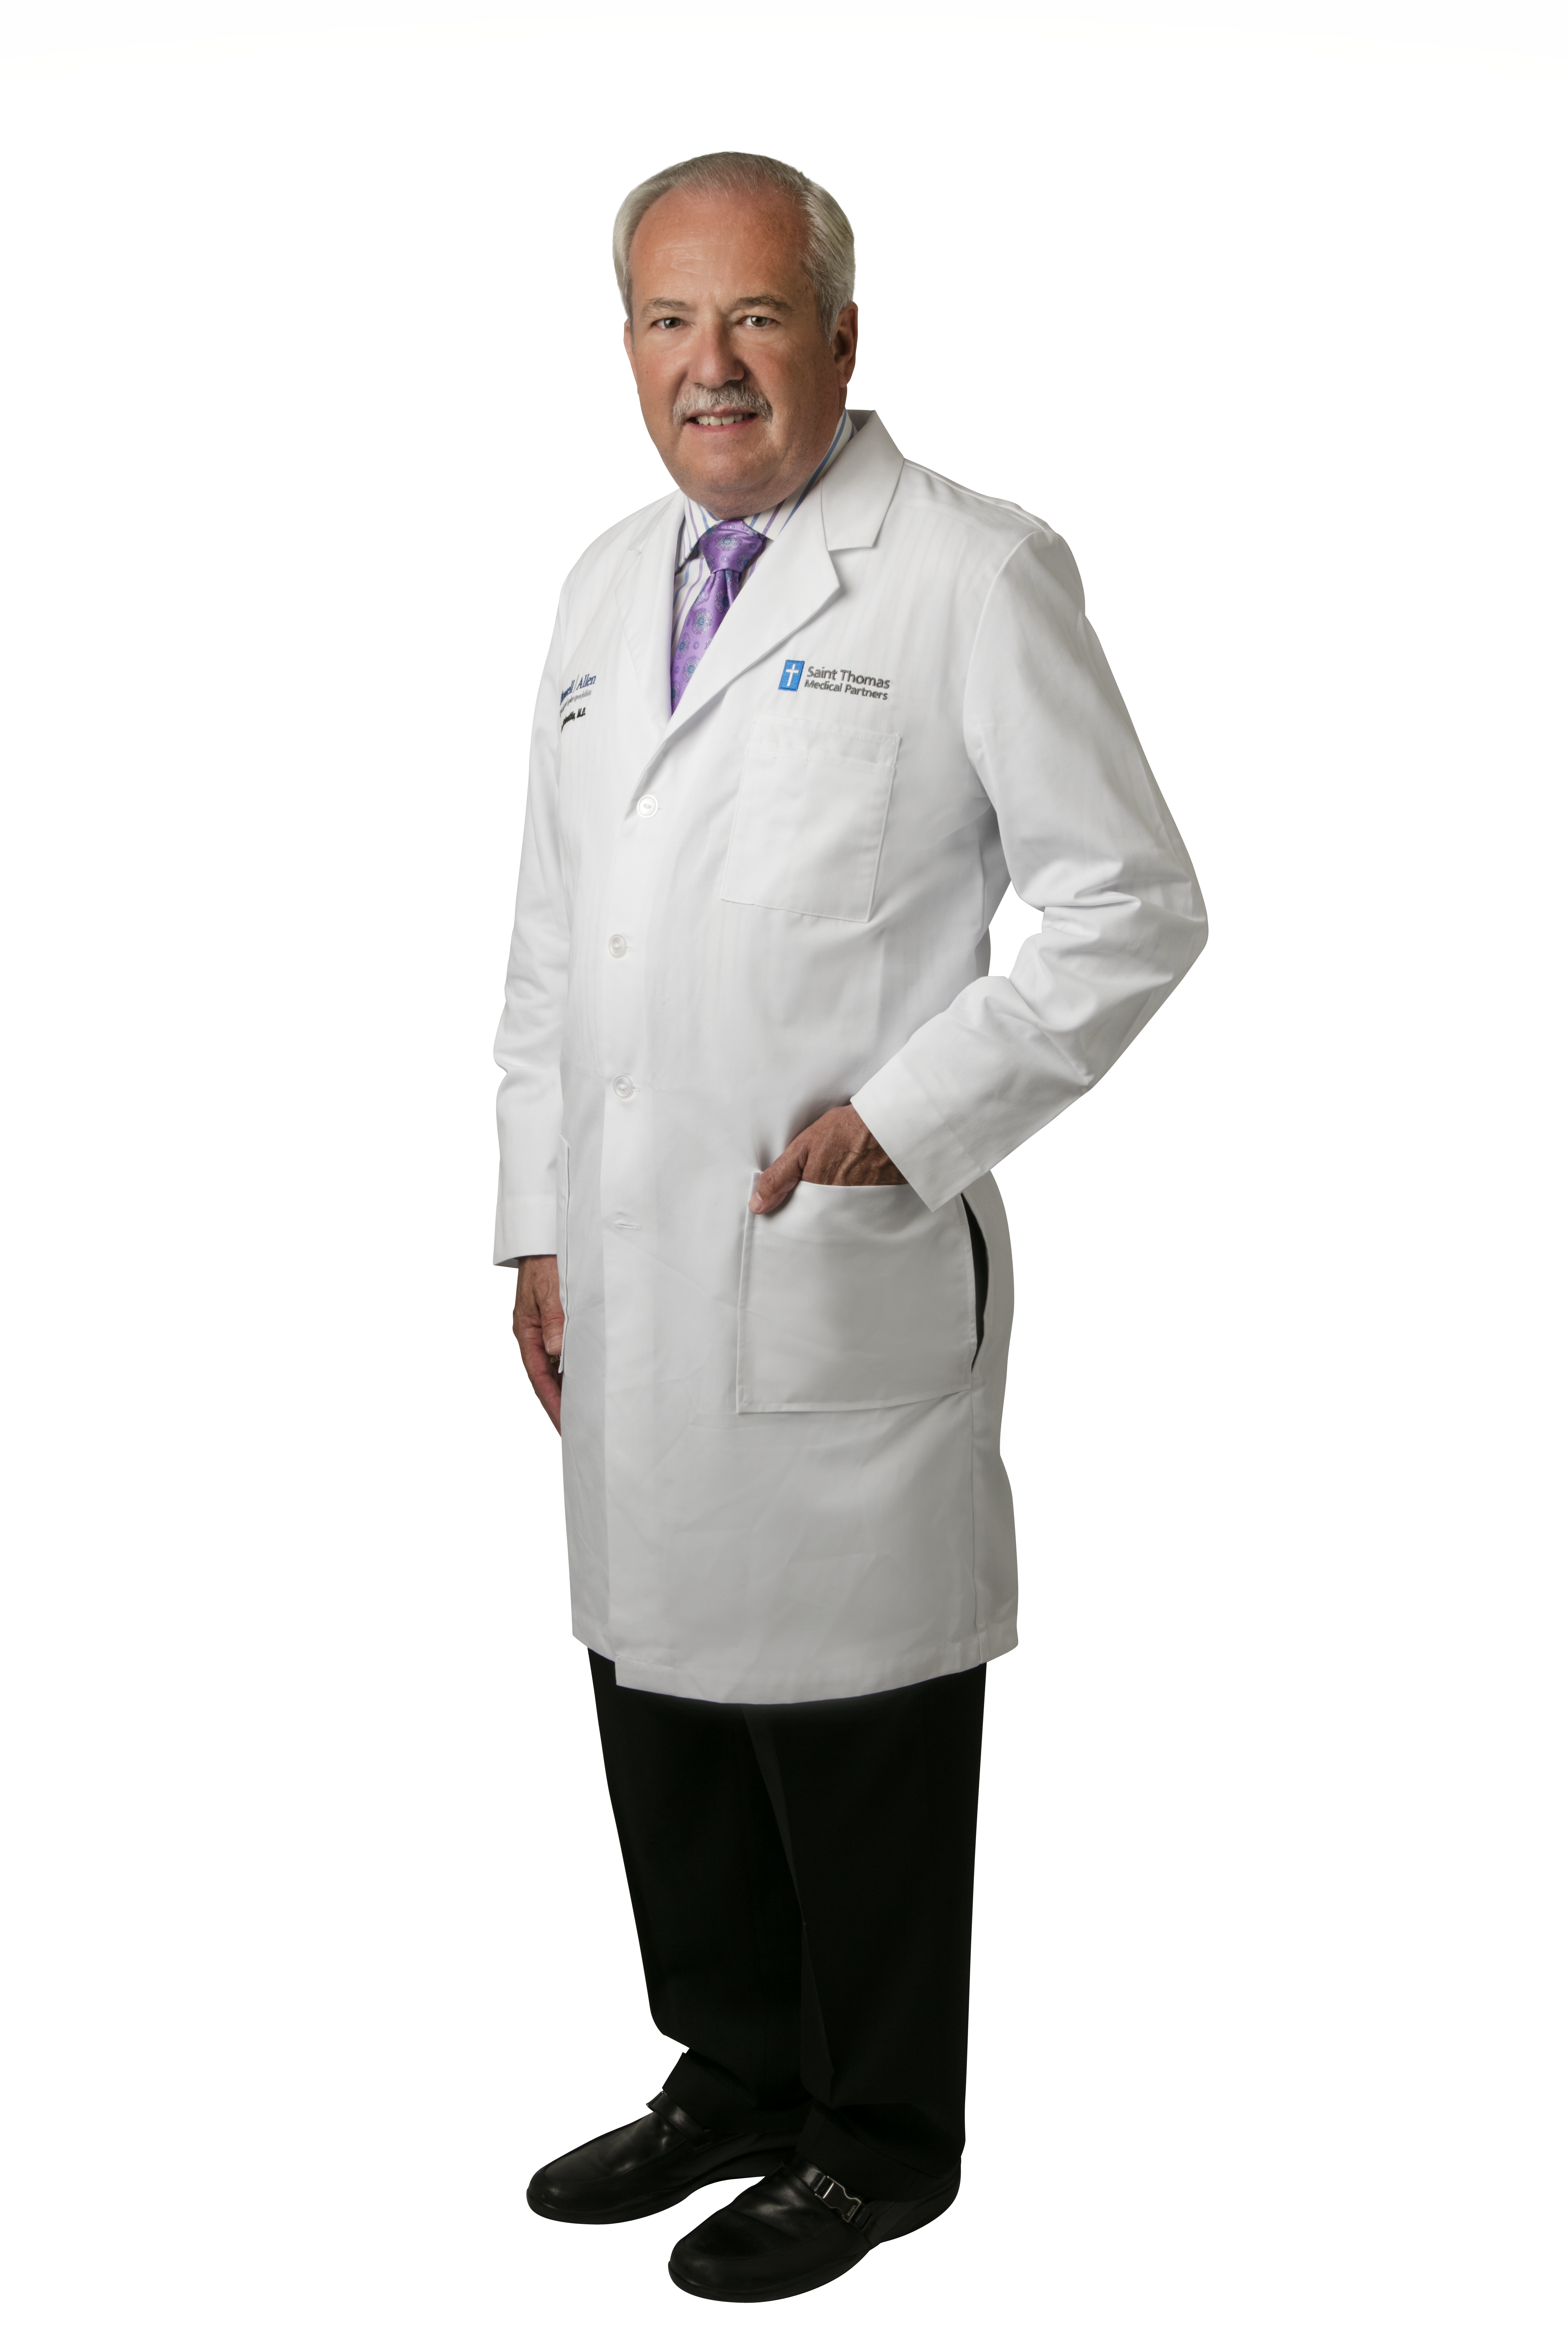 Timothy Schoettle, MD